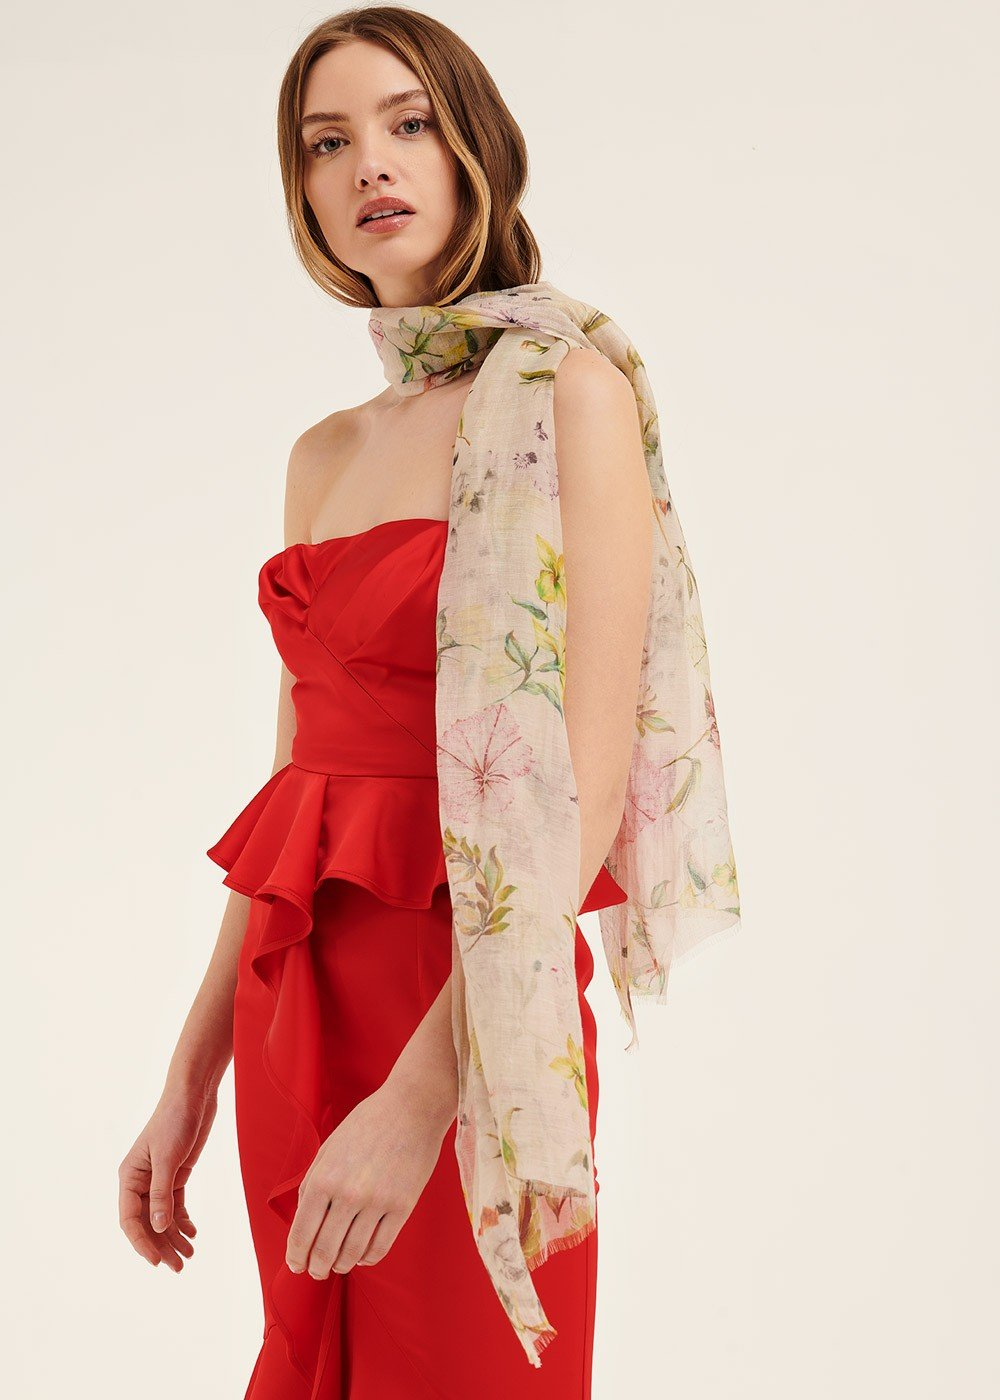 Sidney floral patterned scarf - Nude - Woman